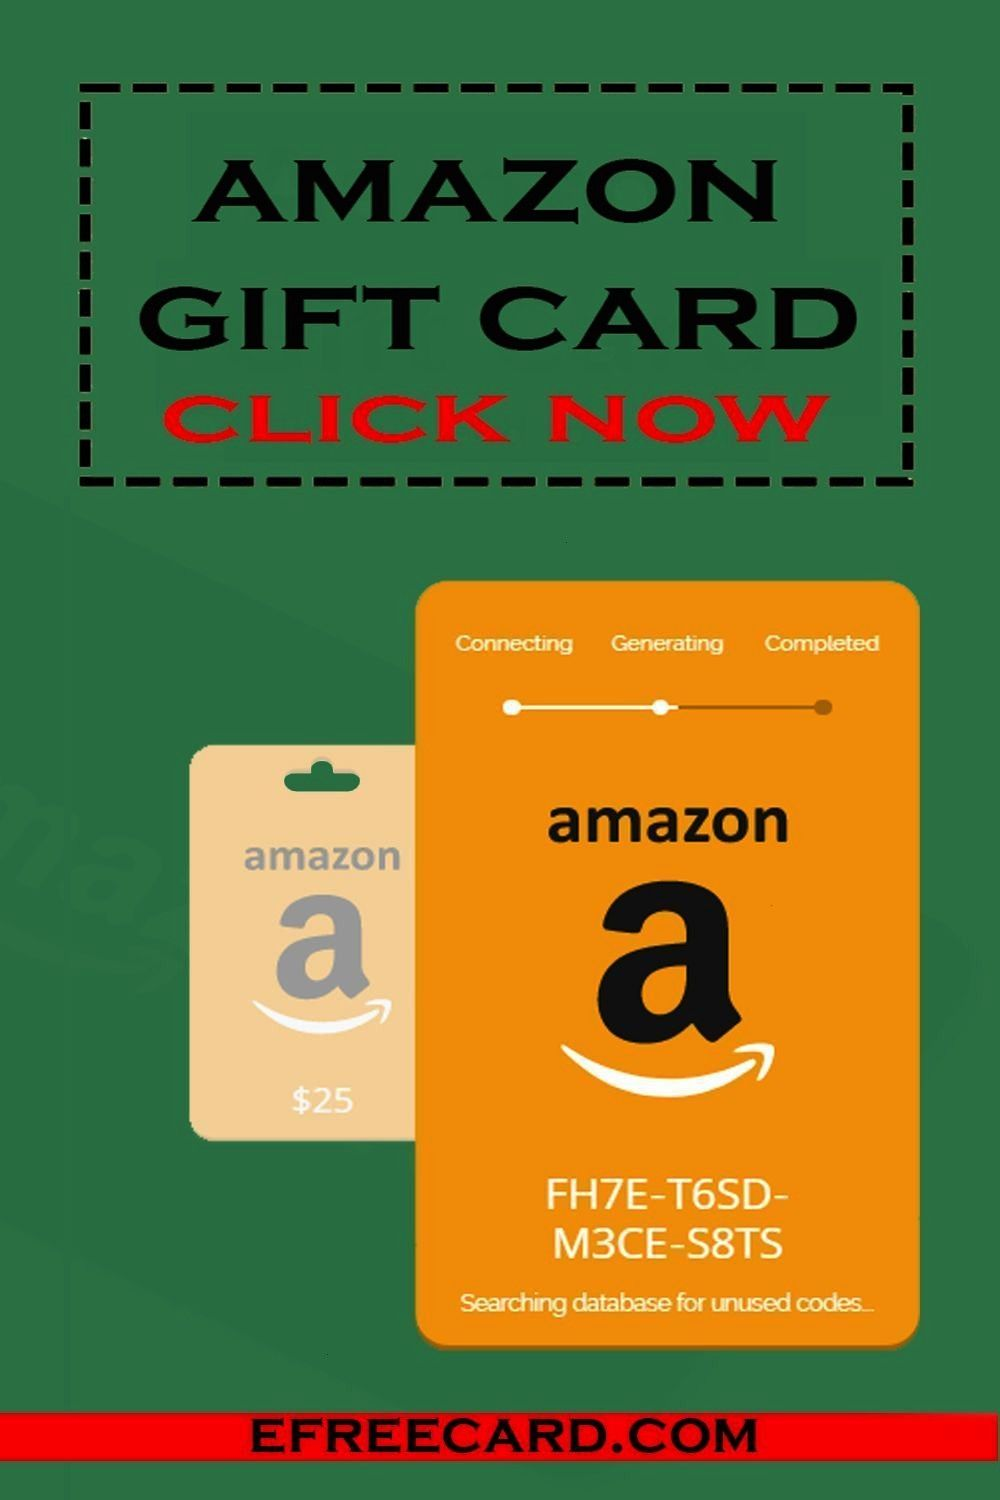 Giftcardplaystore Giftcardgiveaway Itunesgiftcard Generator Amazon Free Gift Card Code Get Amazon Gift Card Free Gift Card Specials Amazon Gift Cards